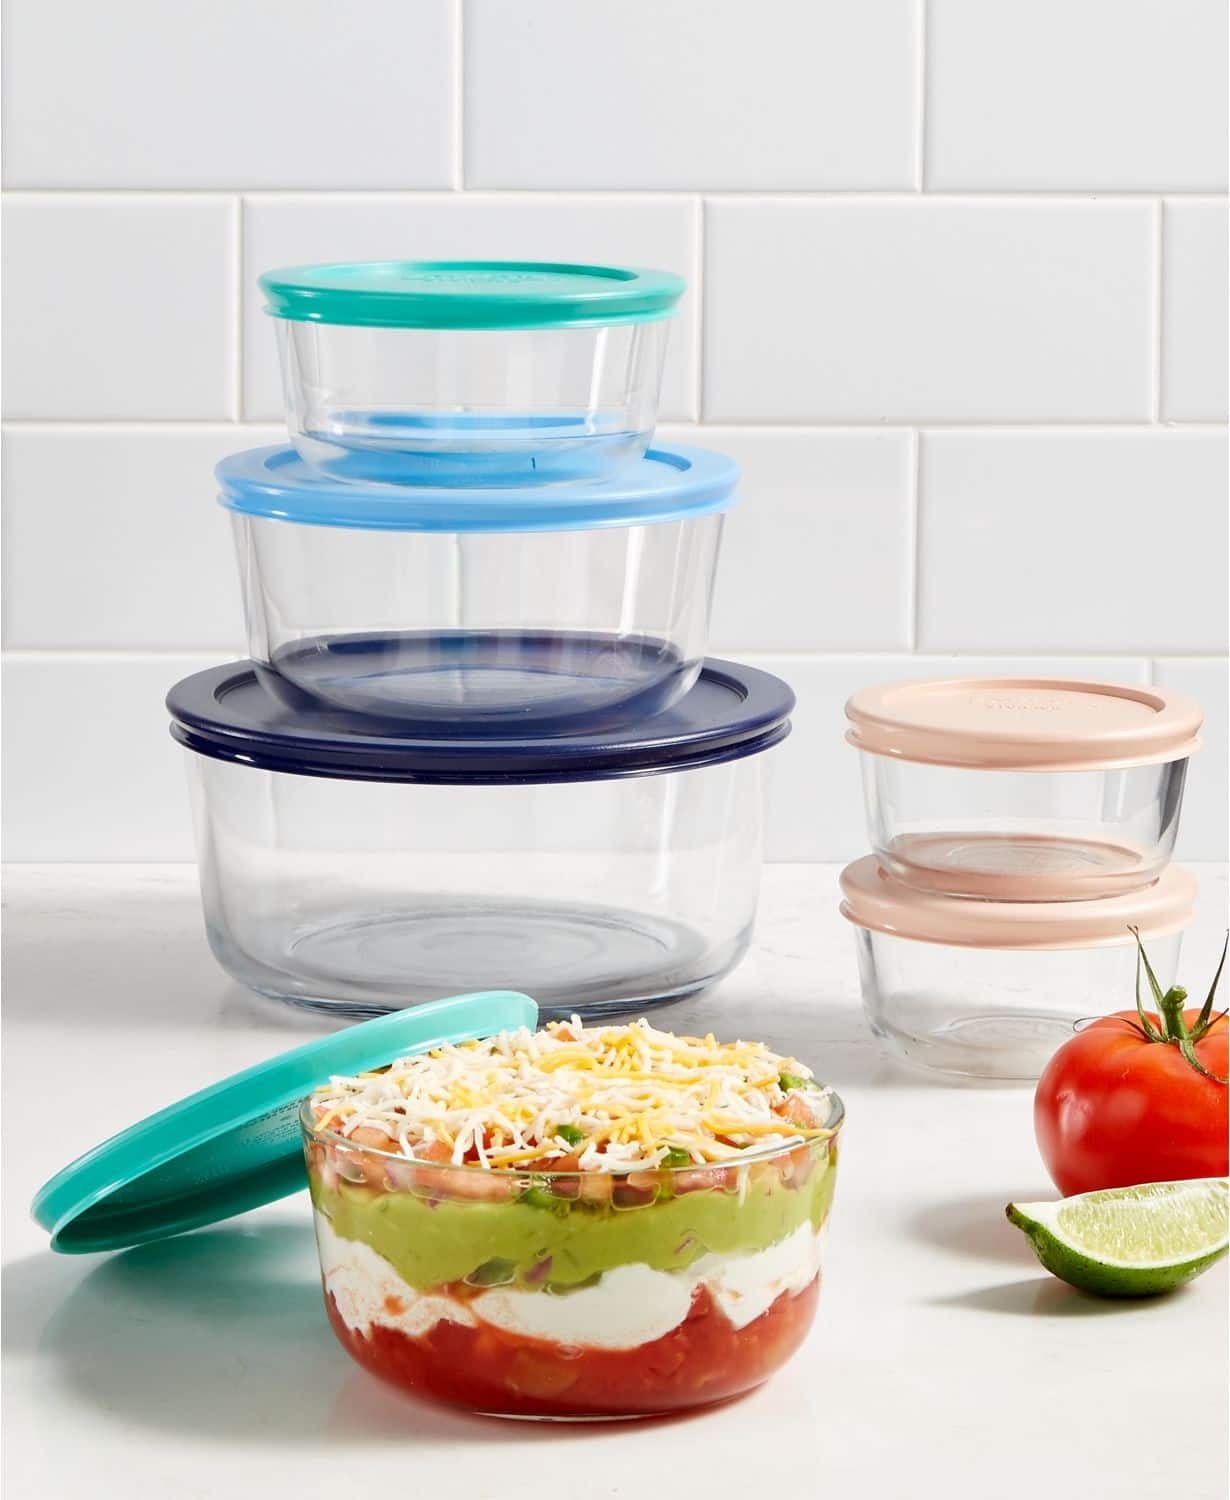 Pyrex 8-Piece Glass Mixing Bowl Set or Pyrex 12-Piece Glass Storage Set $14.99 each at Macys. Free Store Pickup or Free Ship at $25.